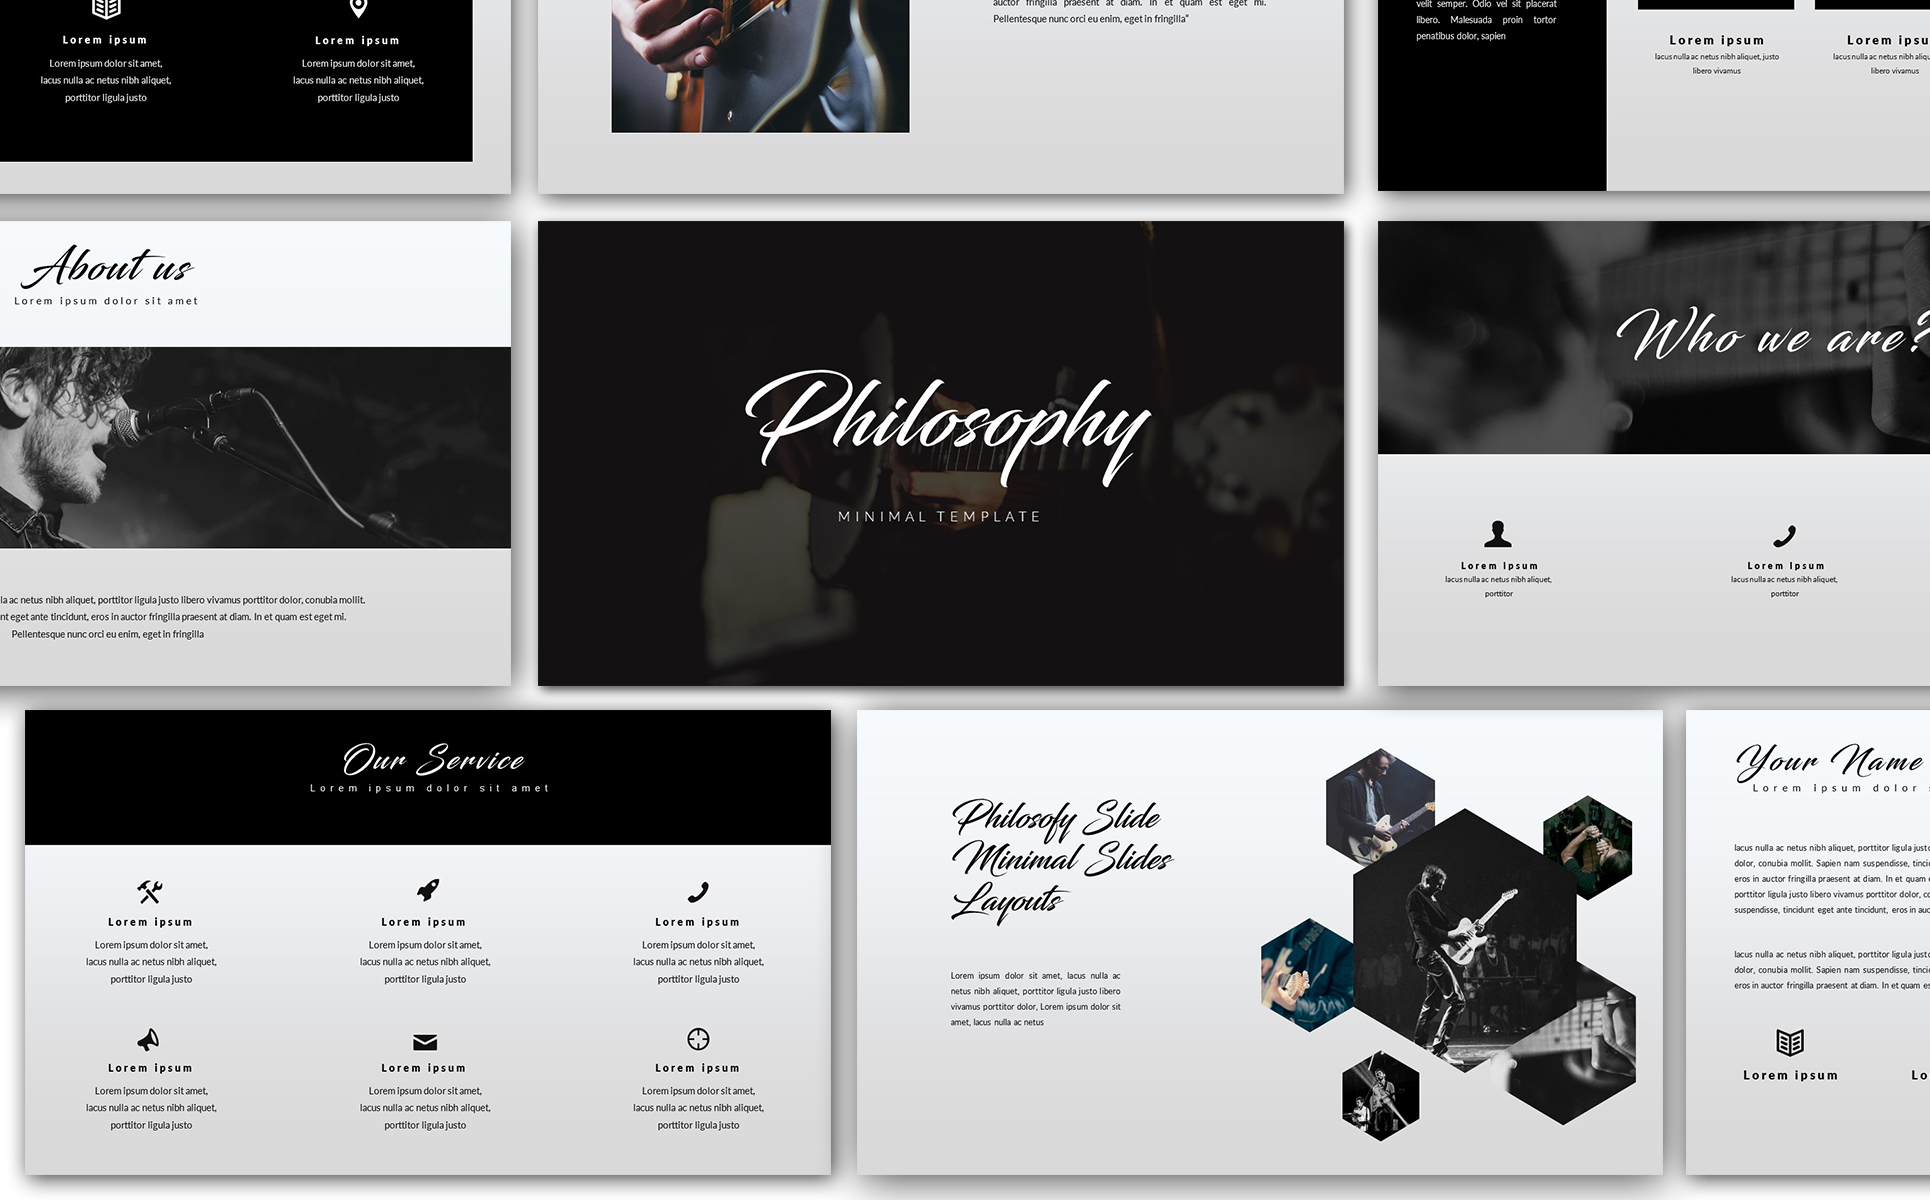 Philosophy minimal powerpoint template 68385 philosophy minimal powerpoint template big screenshot toneelgroepblik Choice Image